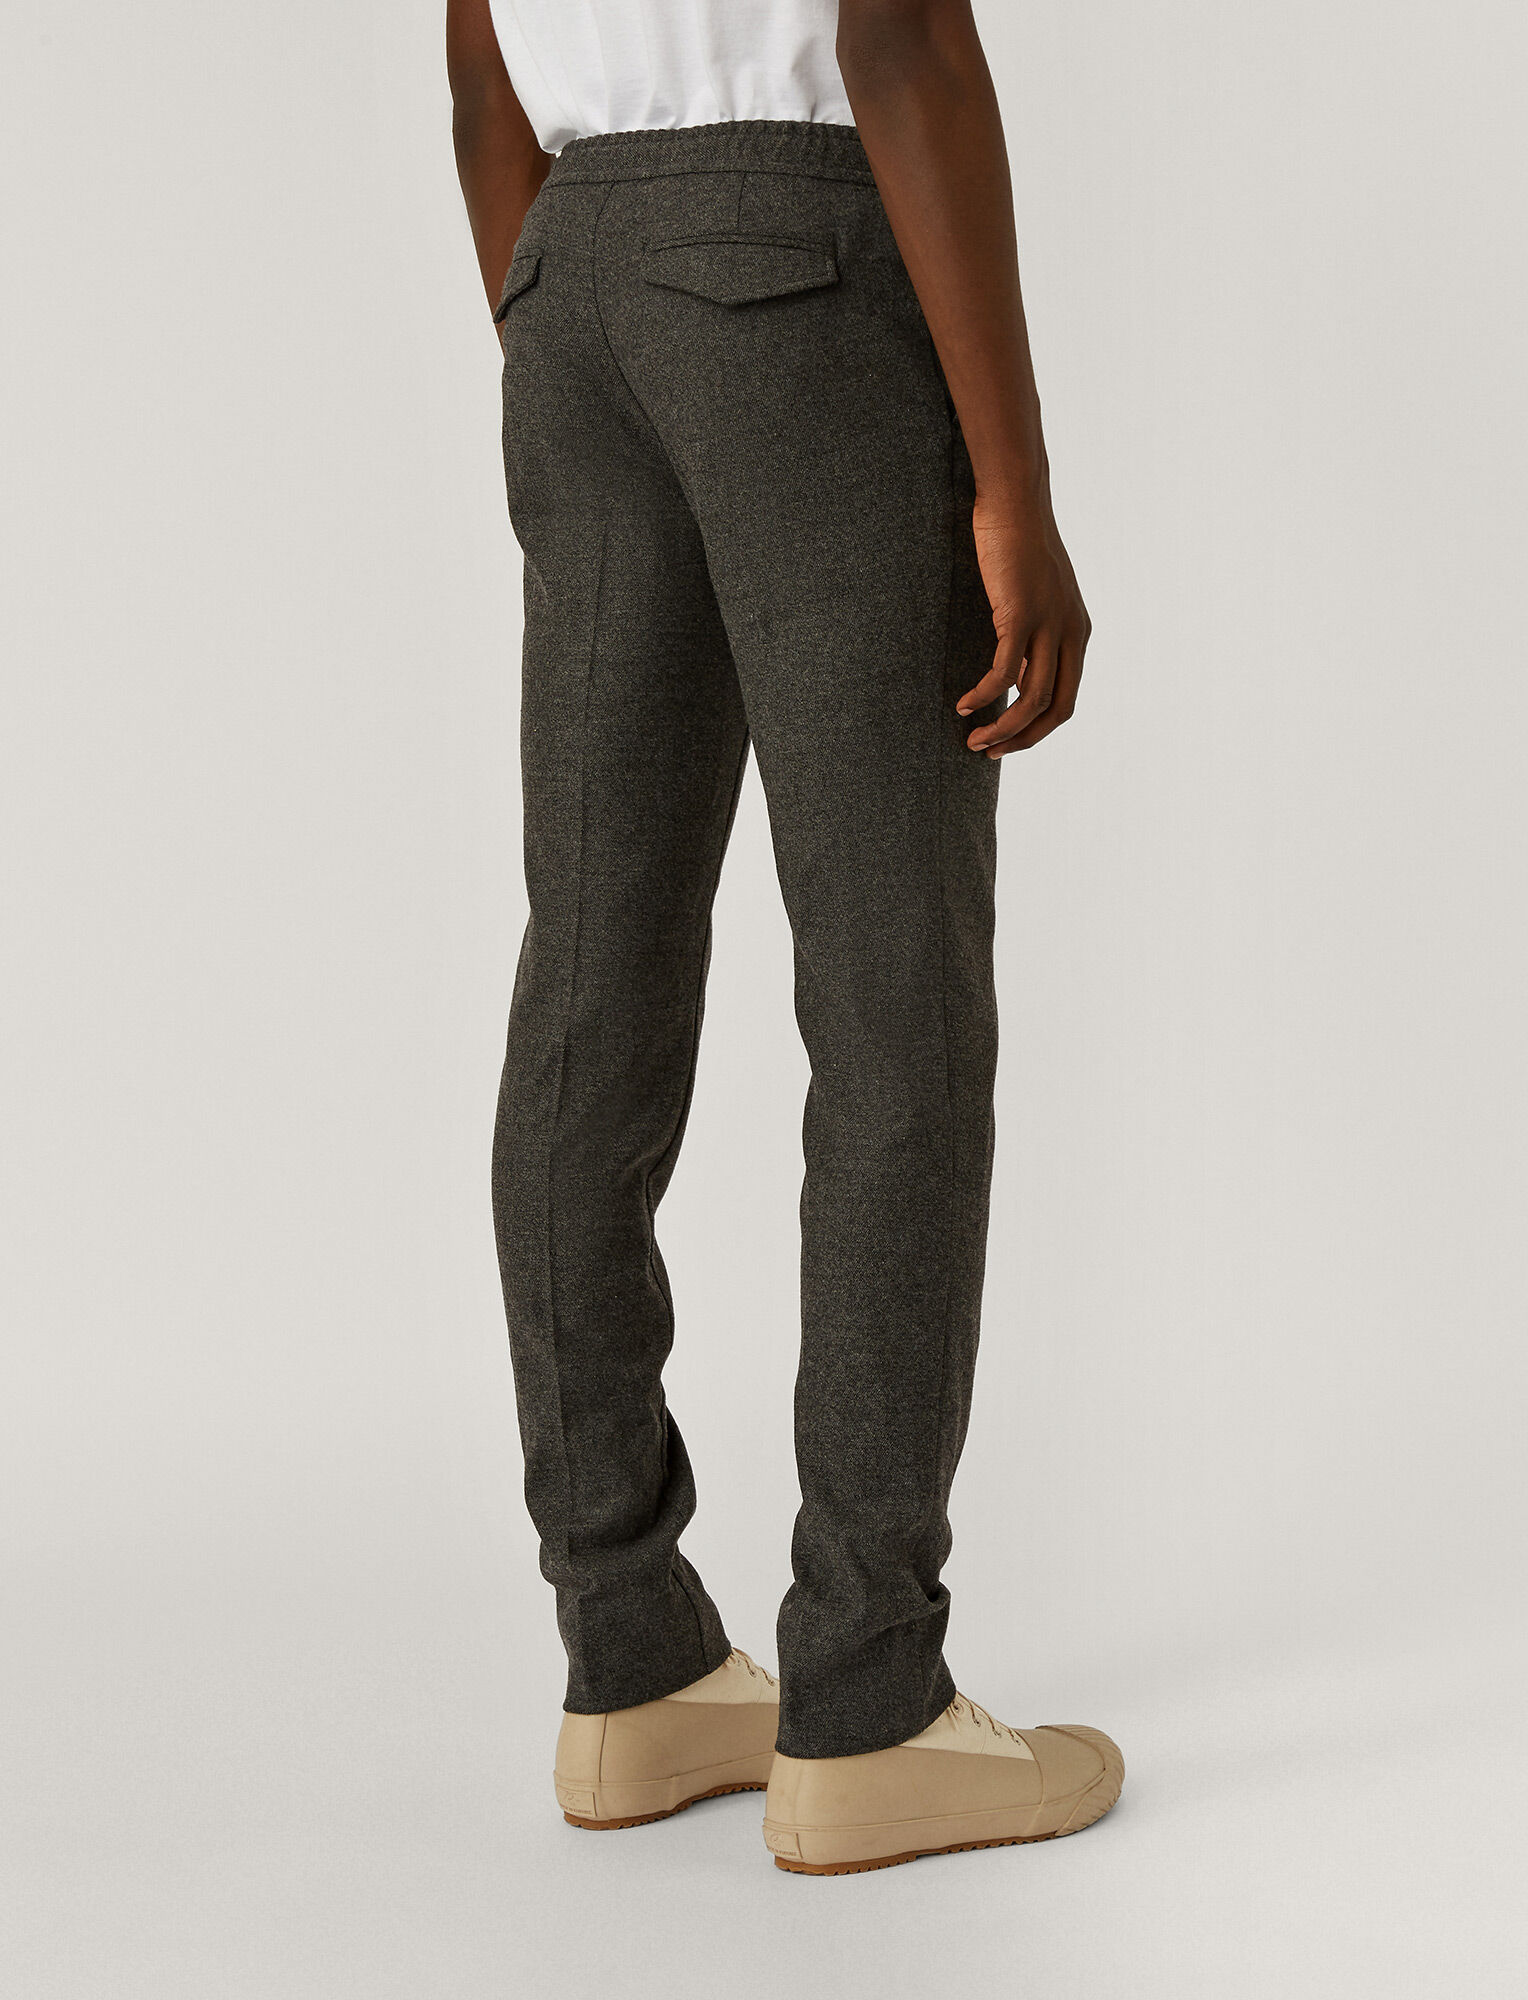 Joseph, Saxony Stretch Trousers, in Grey